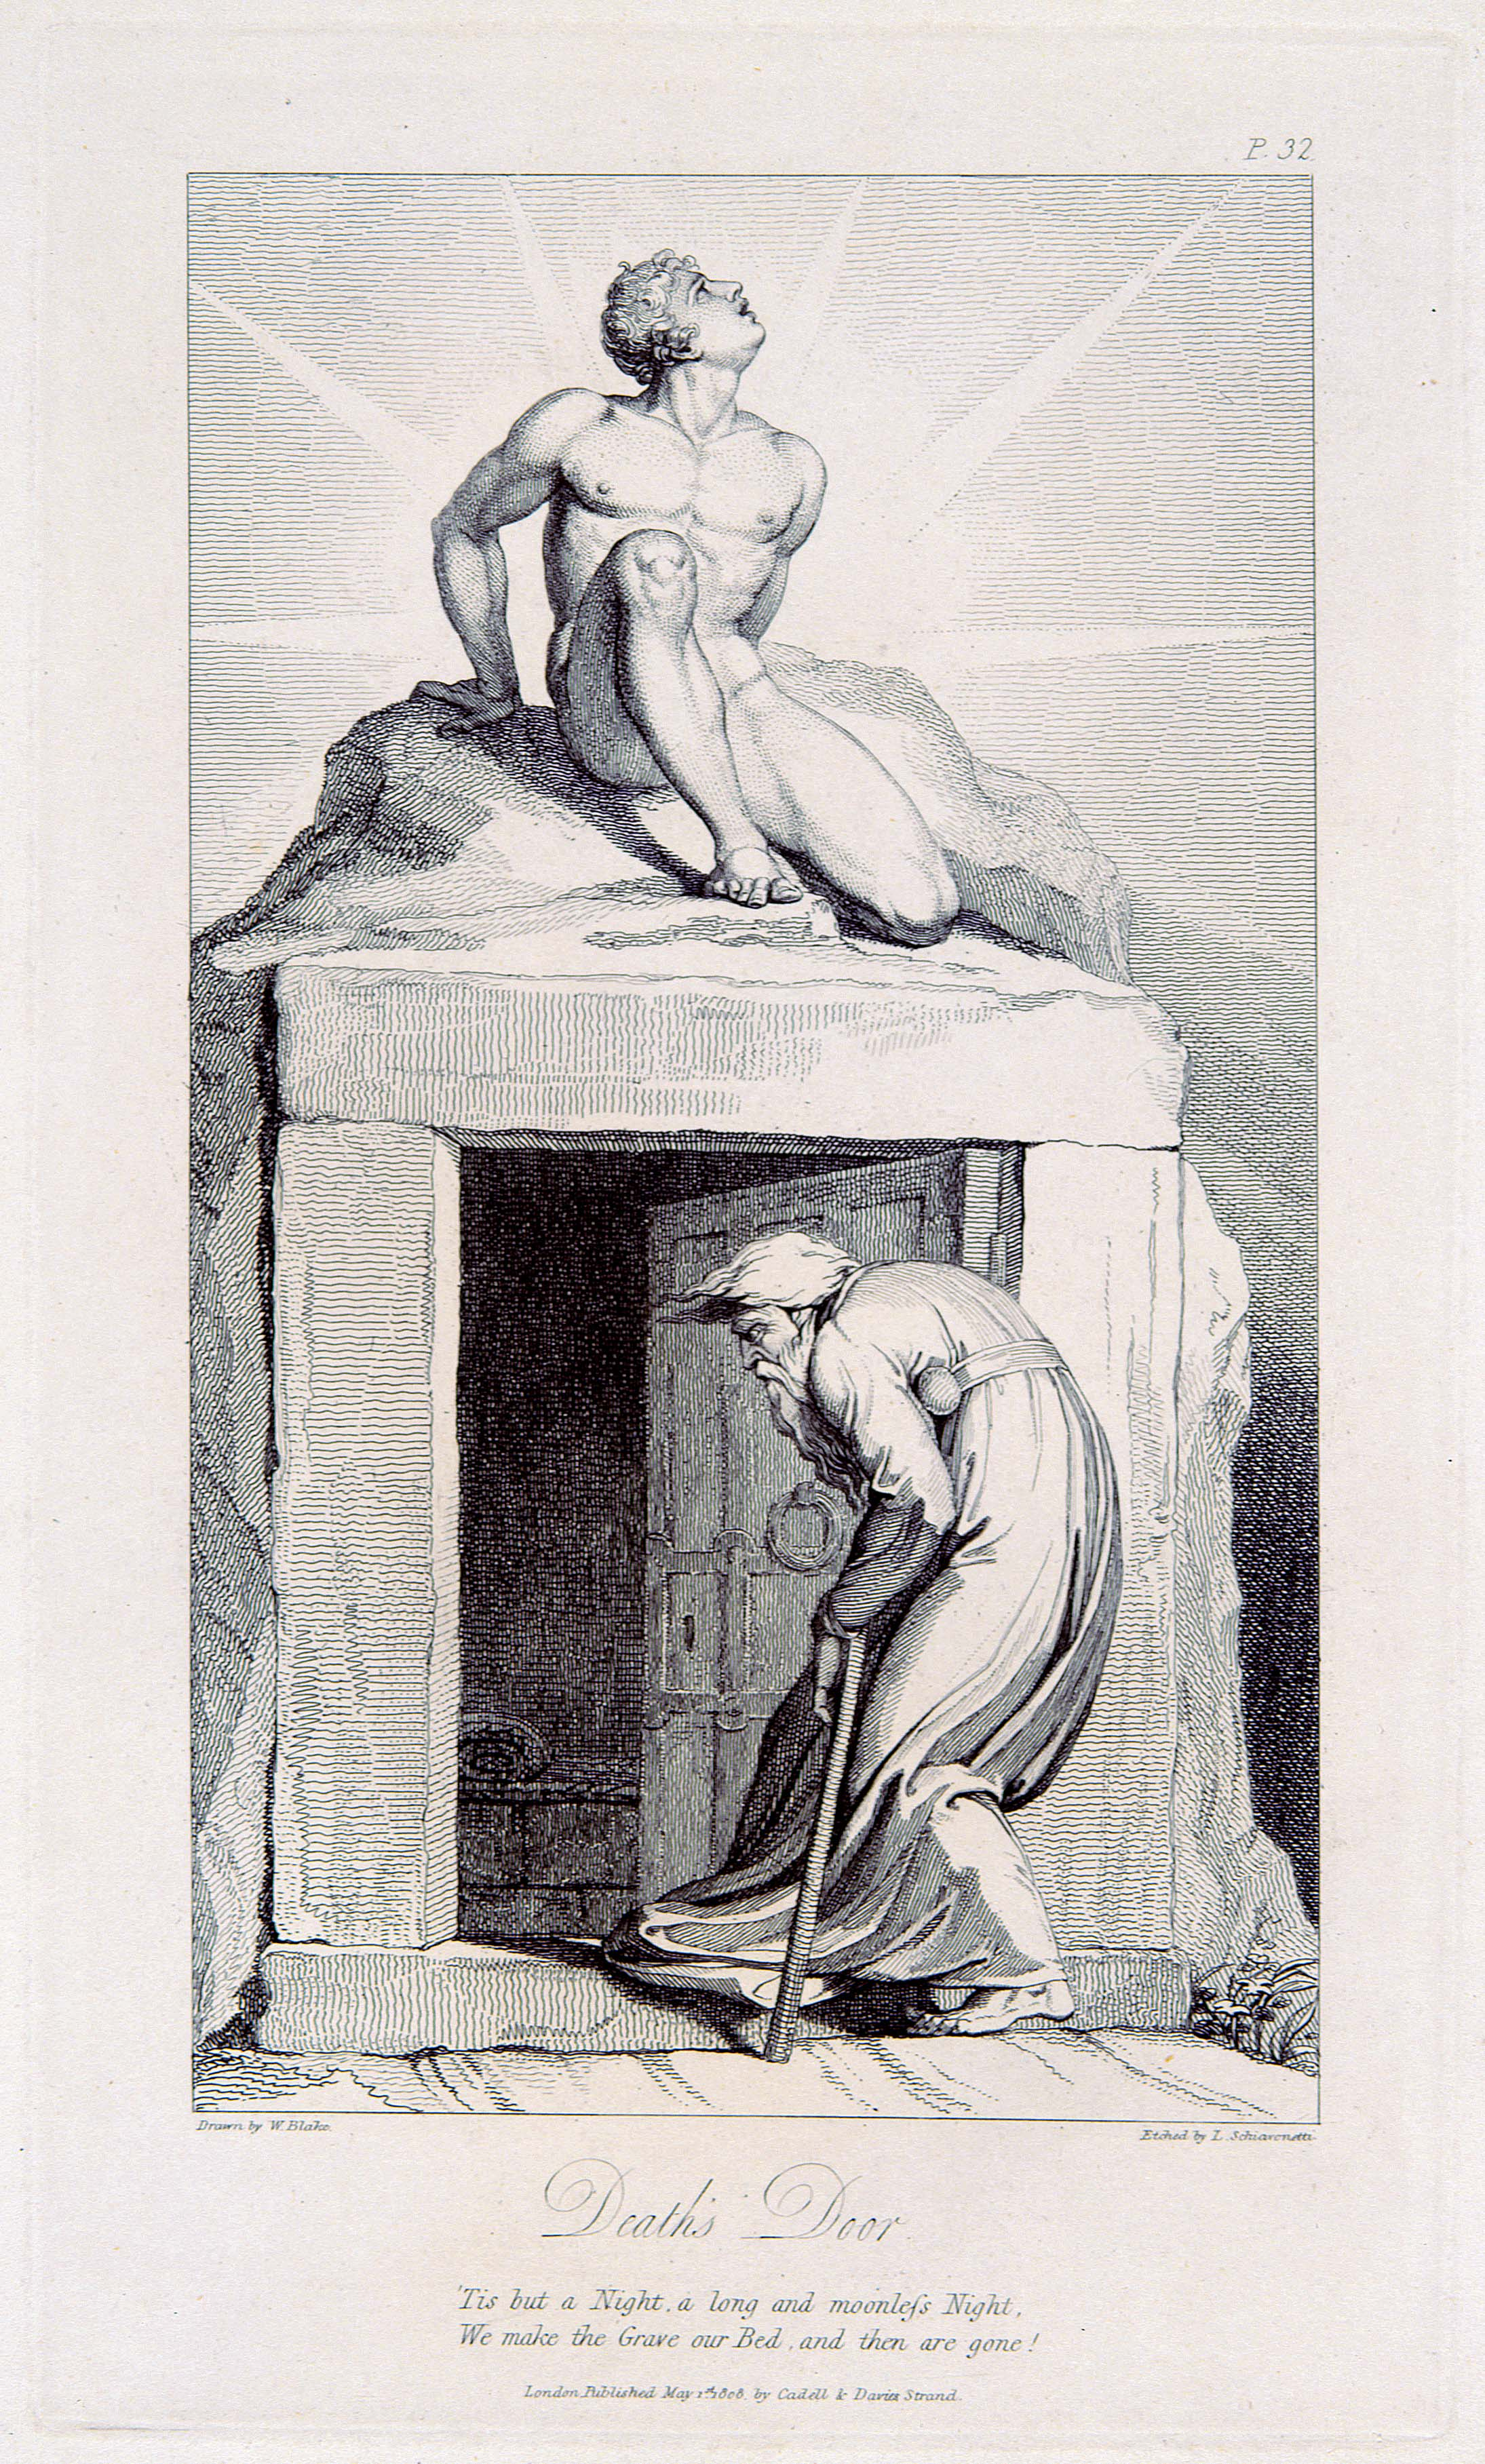 P.32.                Drawn by W. Blake.               Etched by L. Schiavonetti.                Death's Door.                'Tis but a Night, a long and moonless Night,               We make the Grave our Bed, and then are gone!                London, Published May 1st. 1808, by Cadell & Davies, Strand.